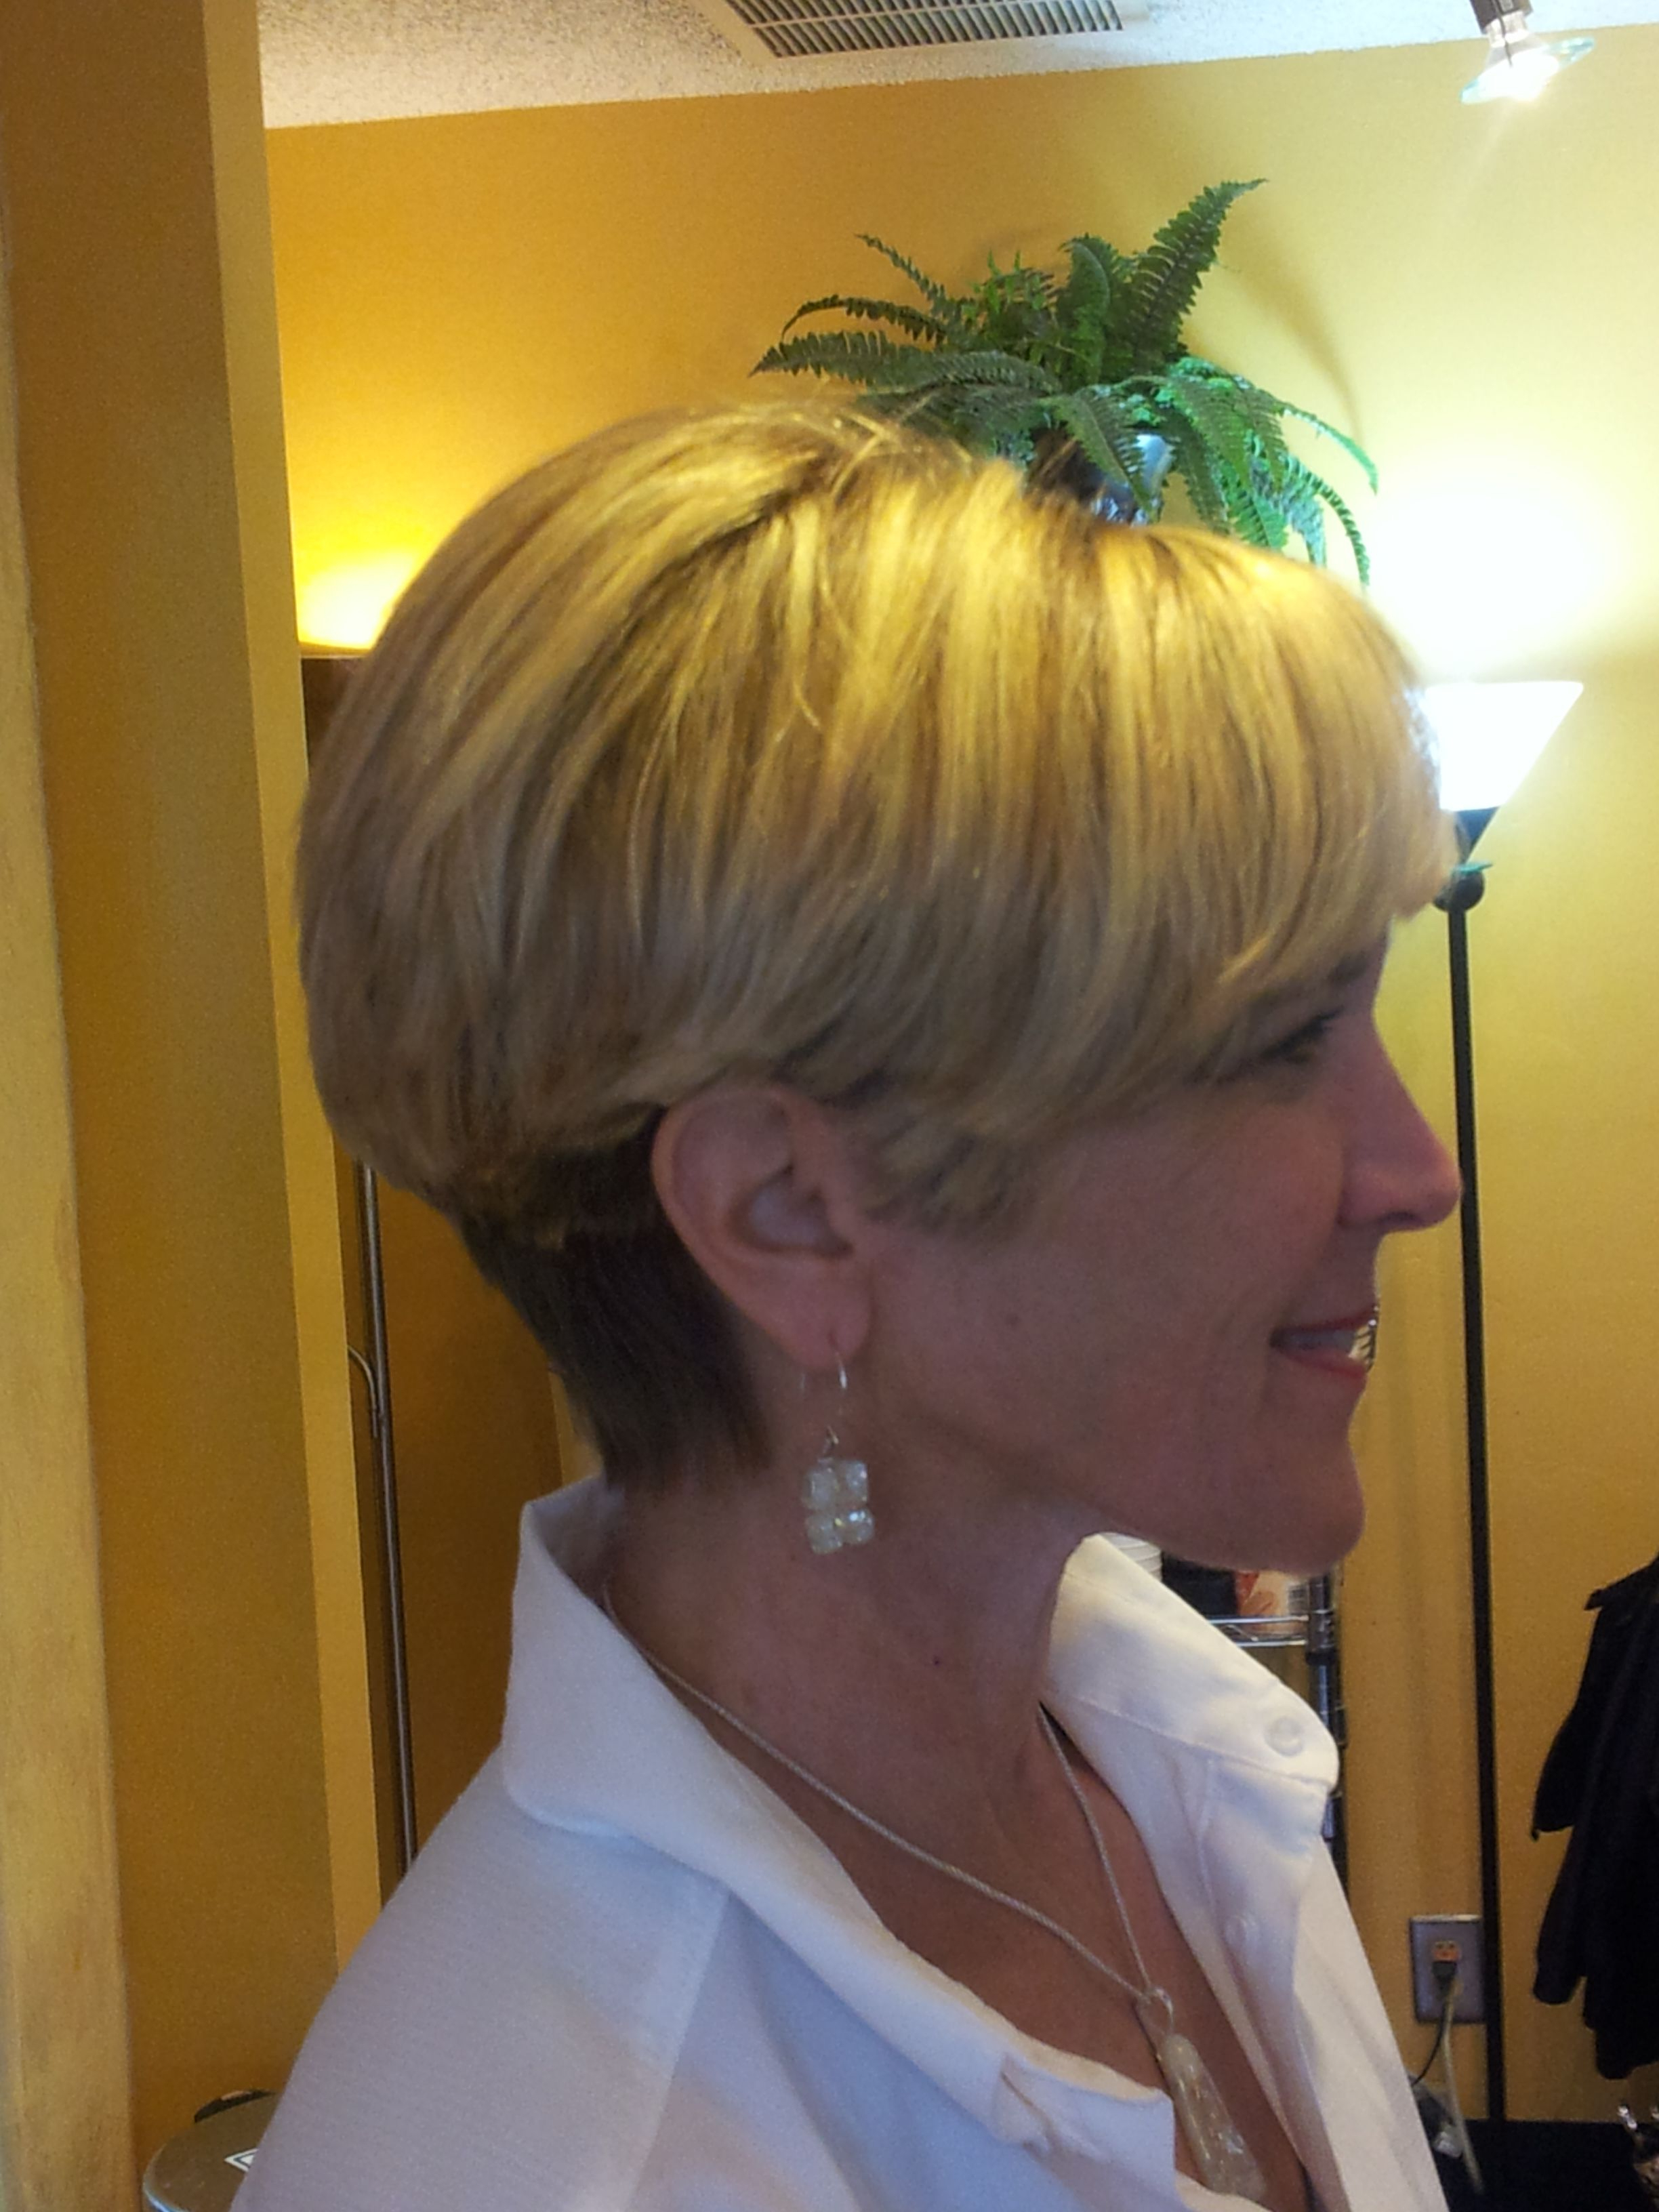 Bonnie Wedge Haircut With Multicolor Weave | Pazazz Salon Hairstyles Throughout Wedge Short Haircuts (View 8 of 25)